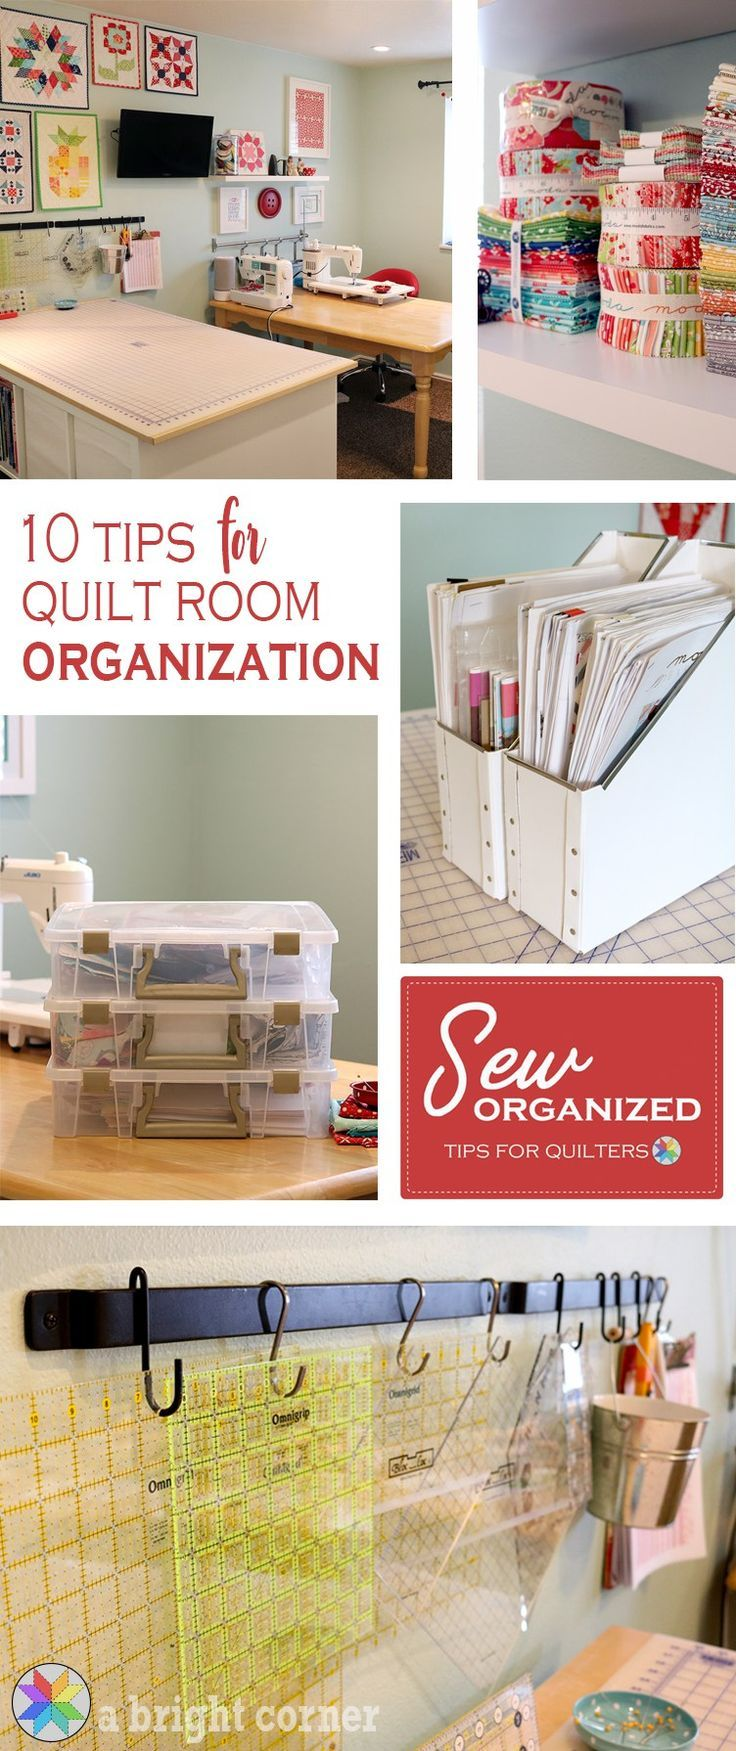 10 tips to organize your sewing room quilting tips and short cuts rh pinterest com